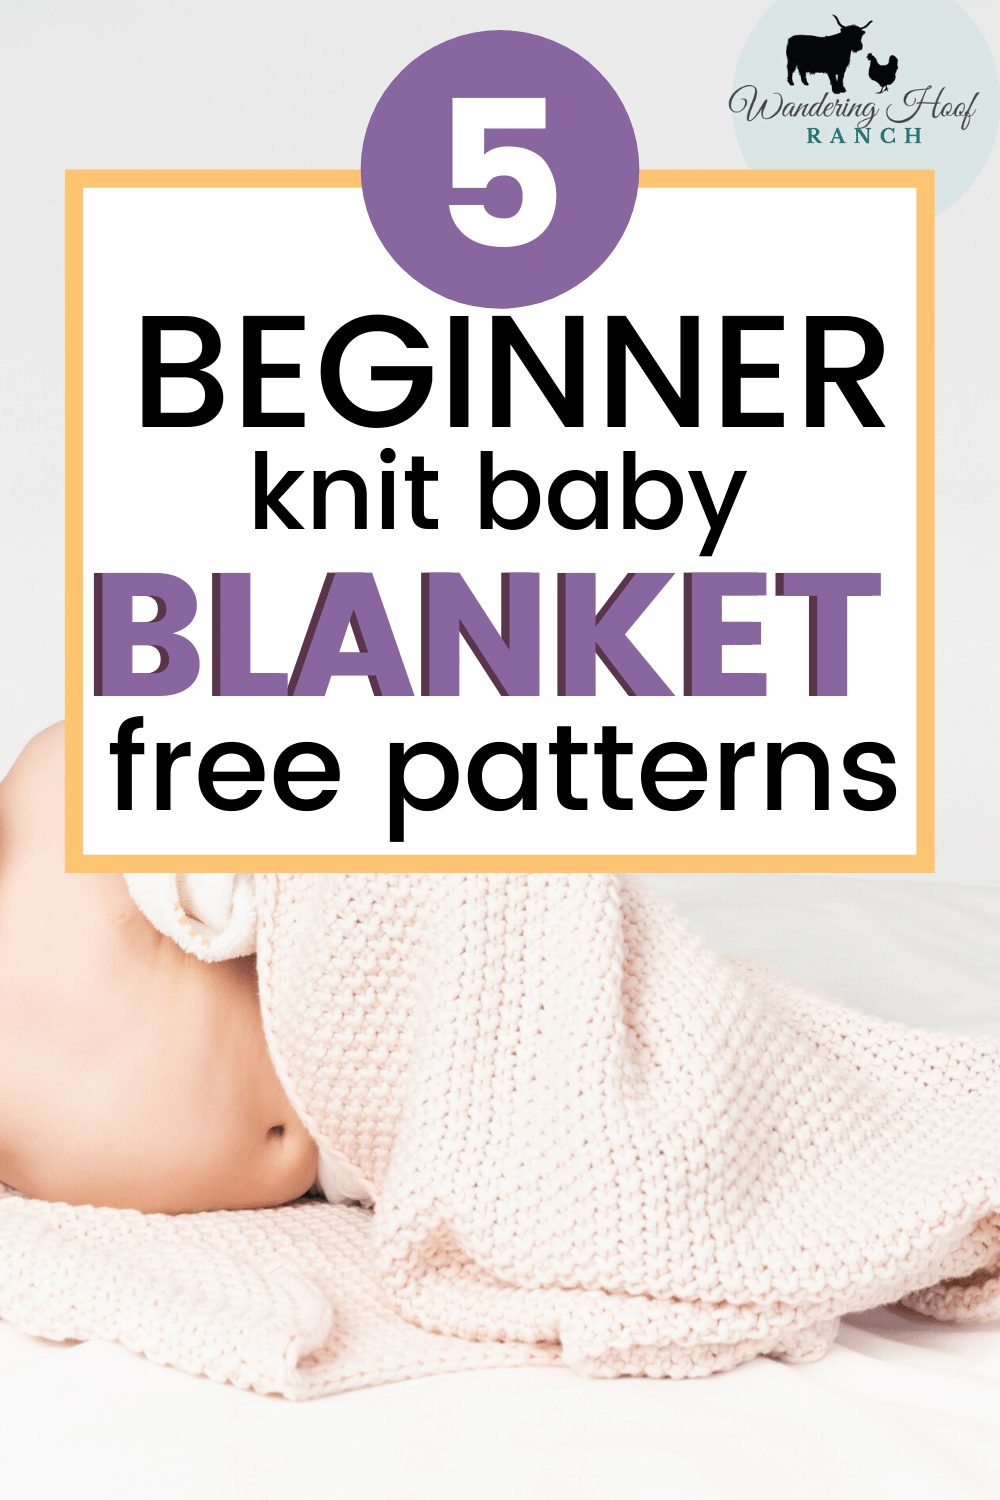 5 baby blanket knitting patterns for beginners. cute baby in blanket